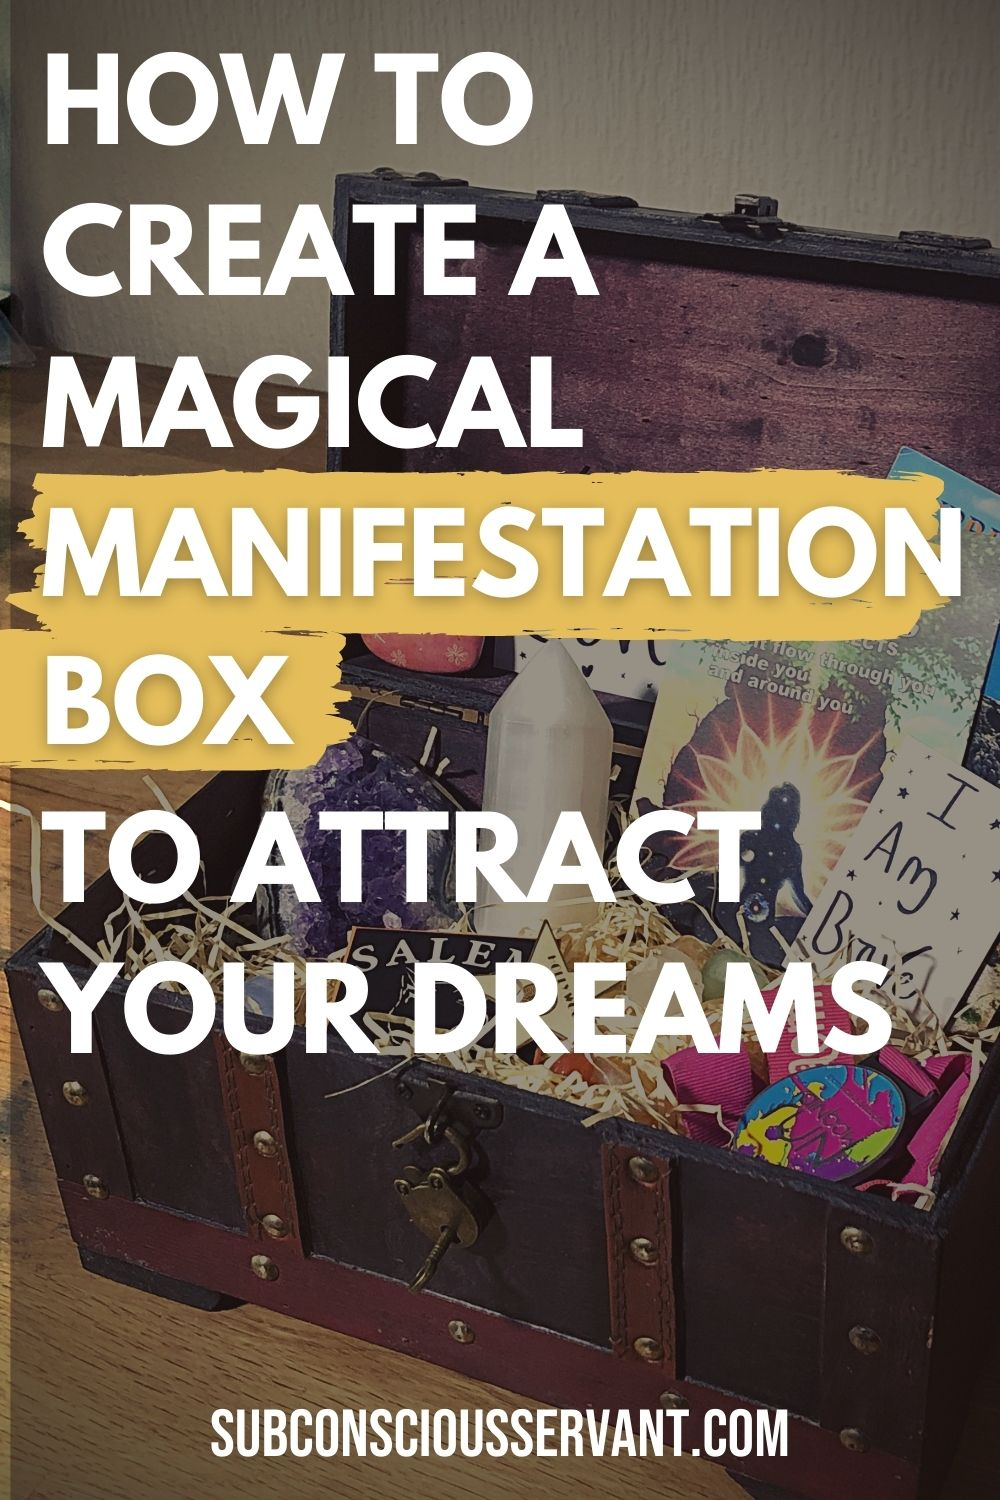 Manifestation Box - A Great Way To Attract Your Desires (How To Guide)